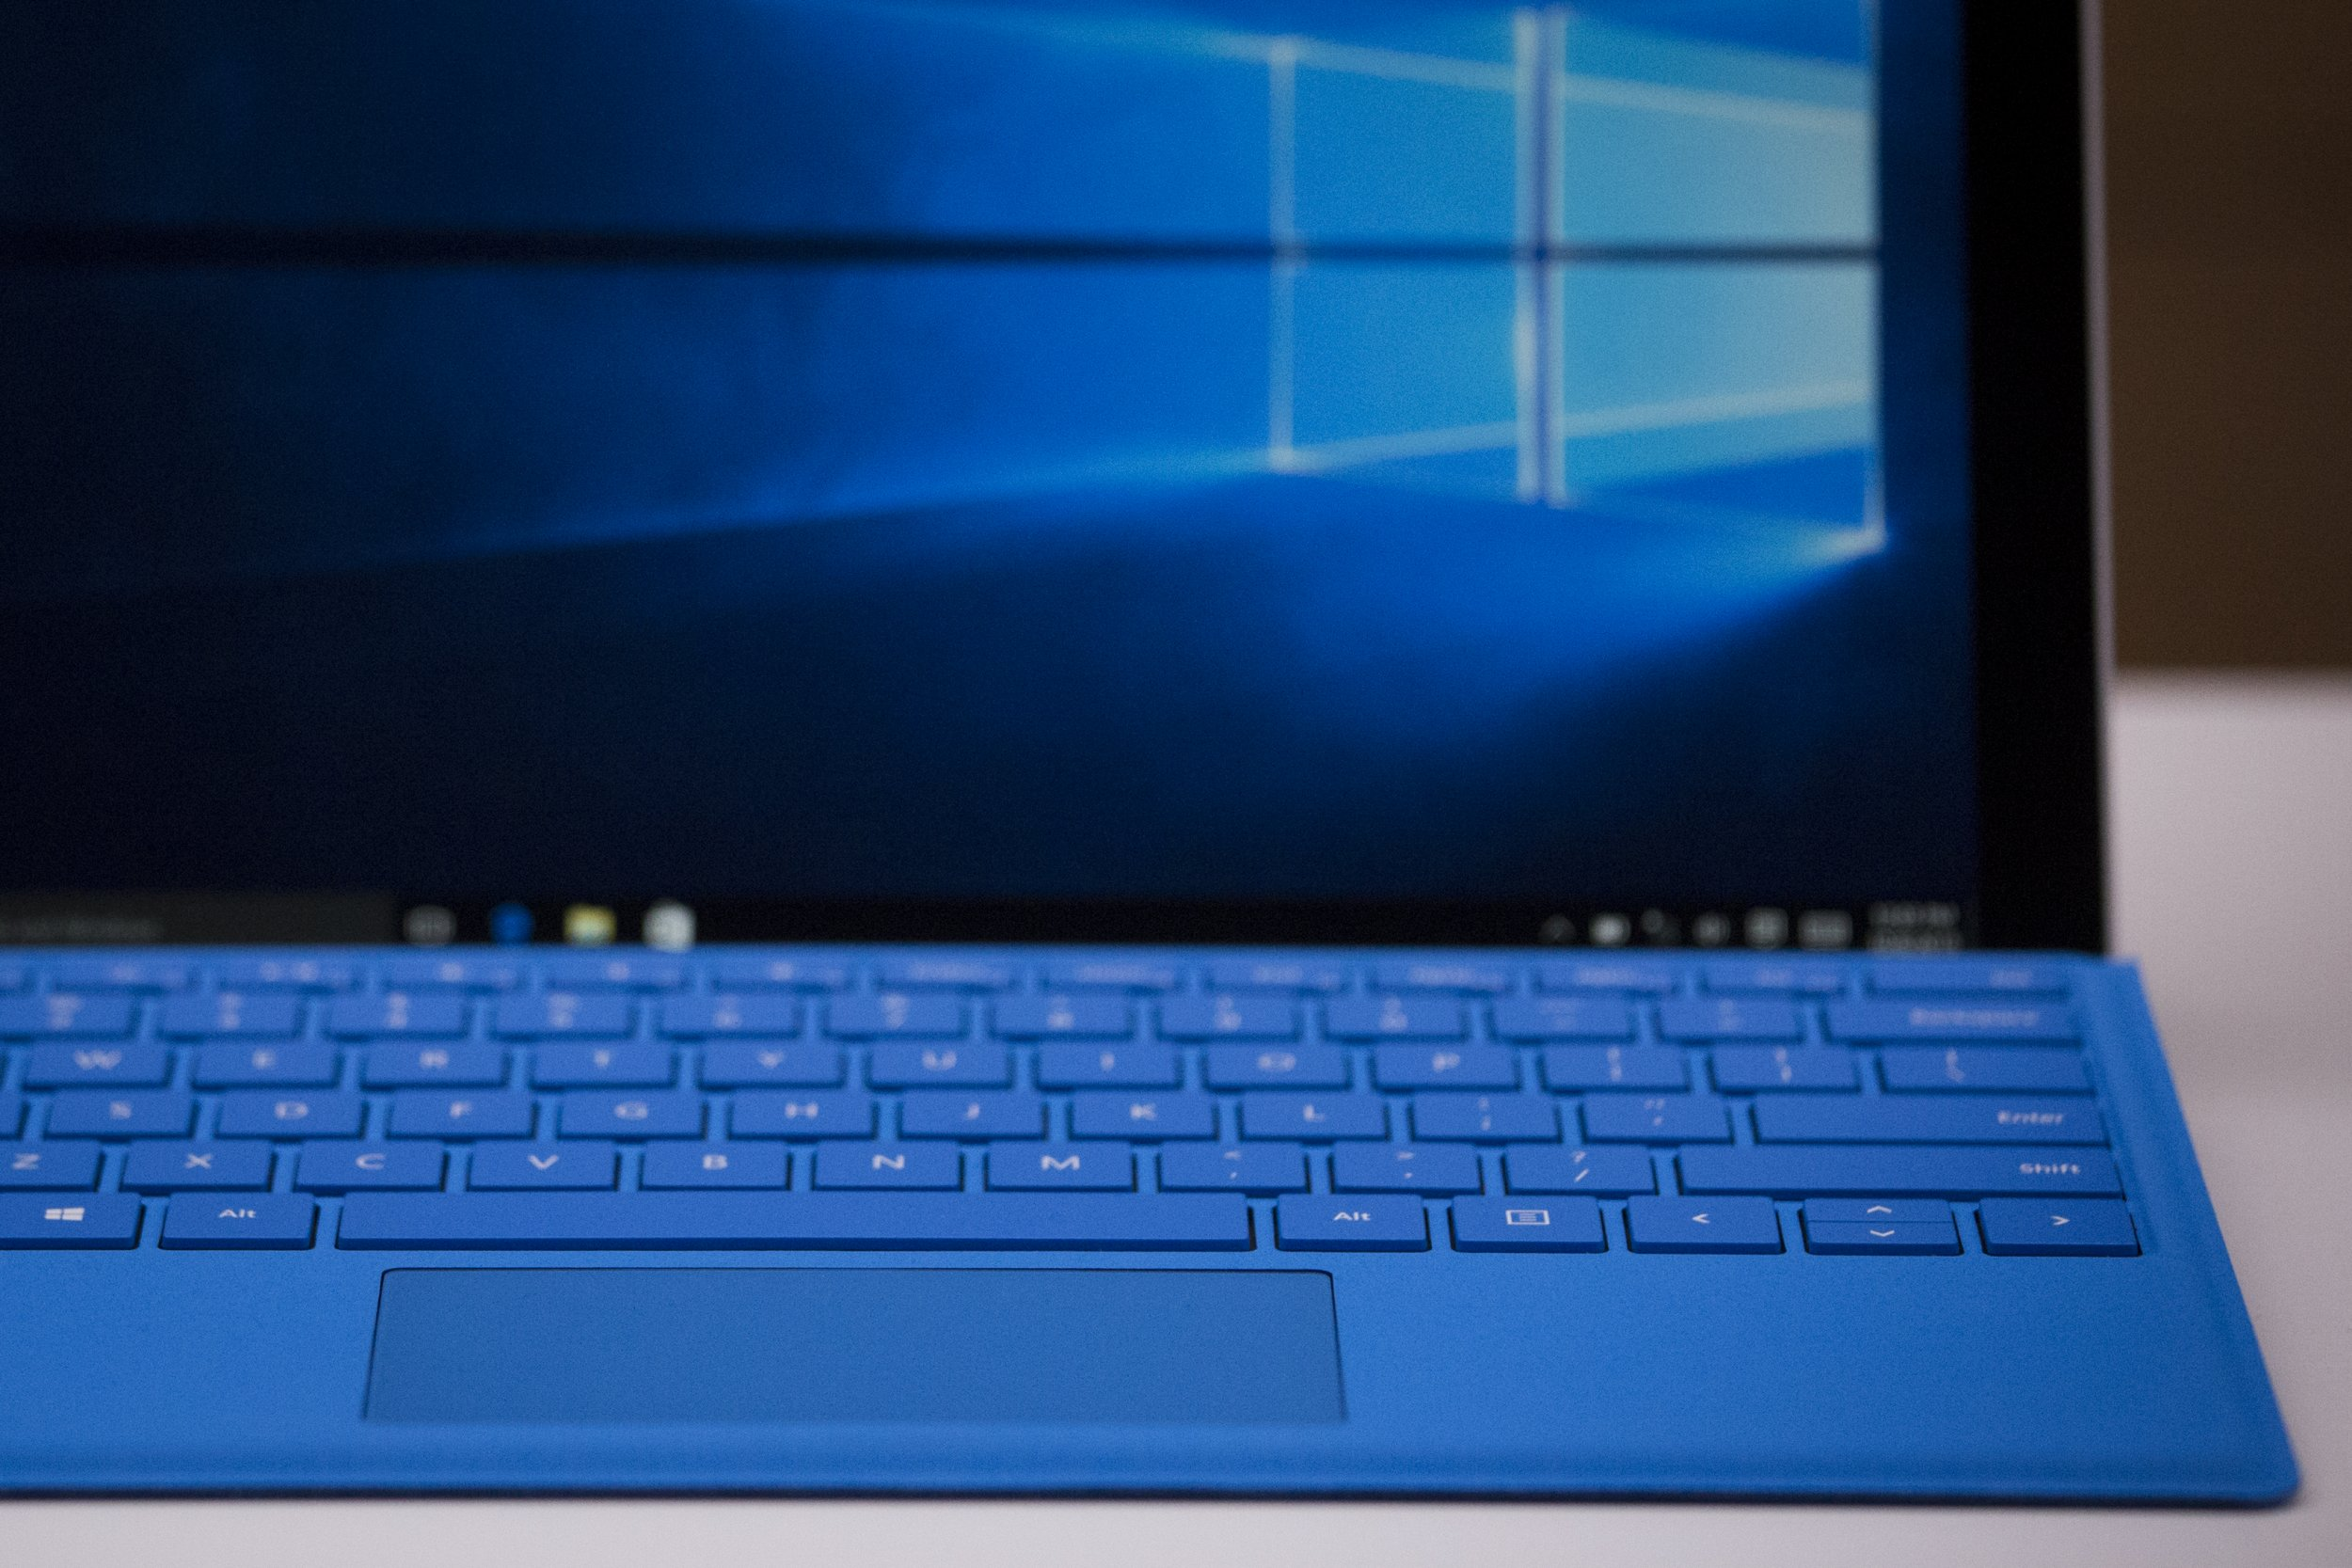 Windows 10 update stops computers accessing the internet